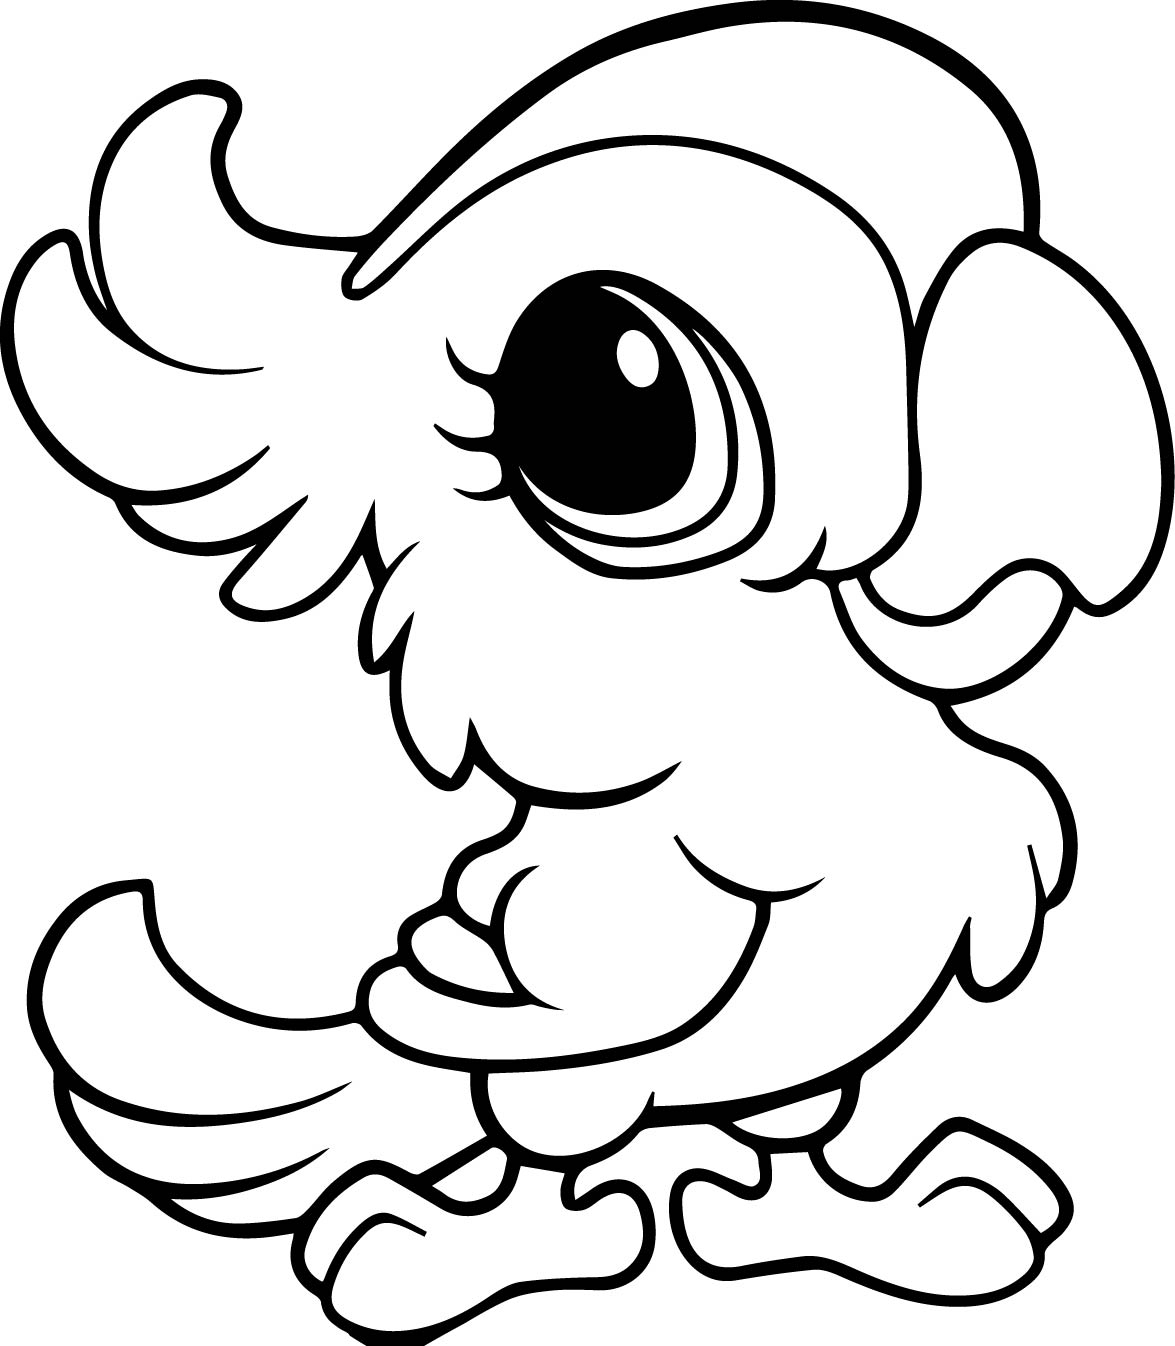 1175x1346 Attractive Cartoons Images For Colouring Awesome Cartoon Animals